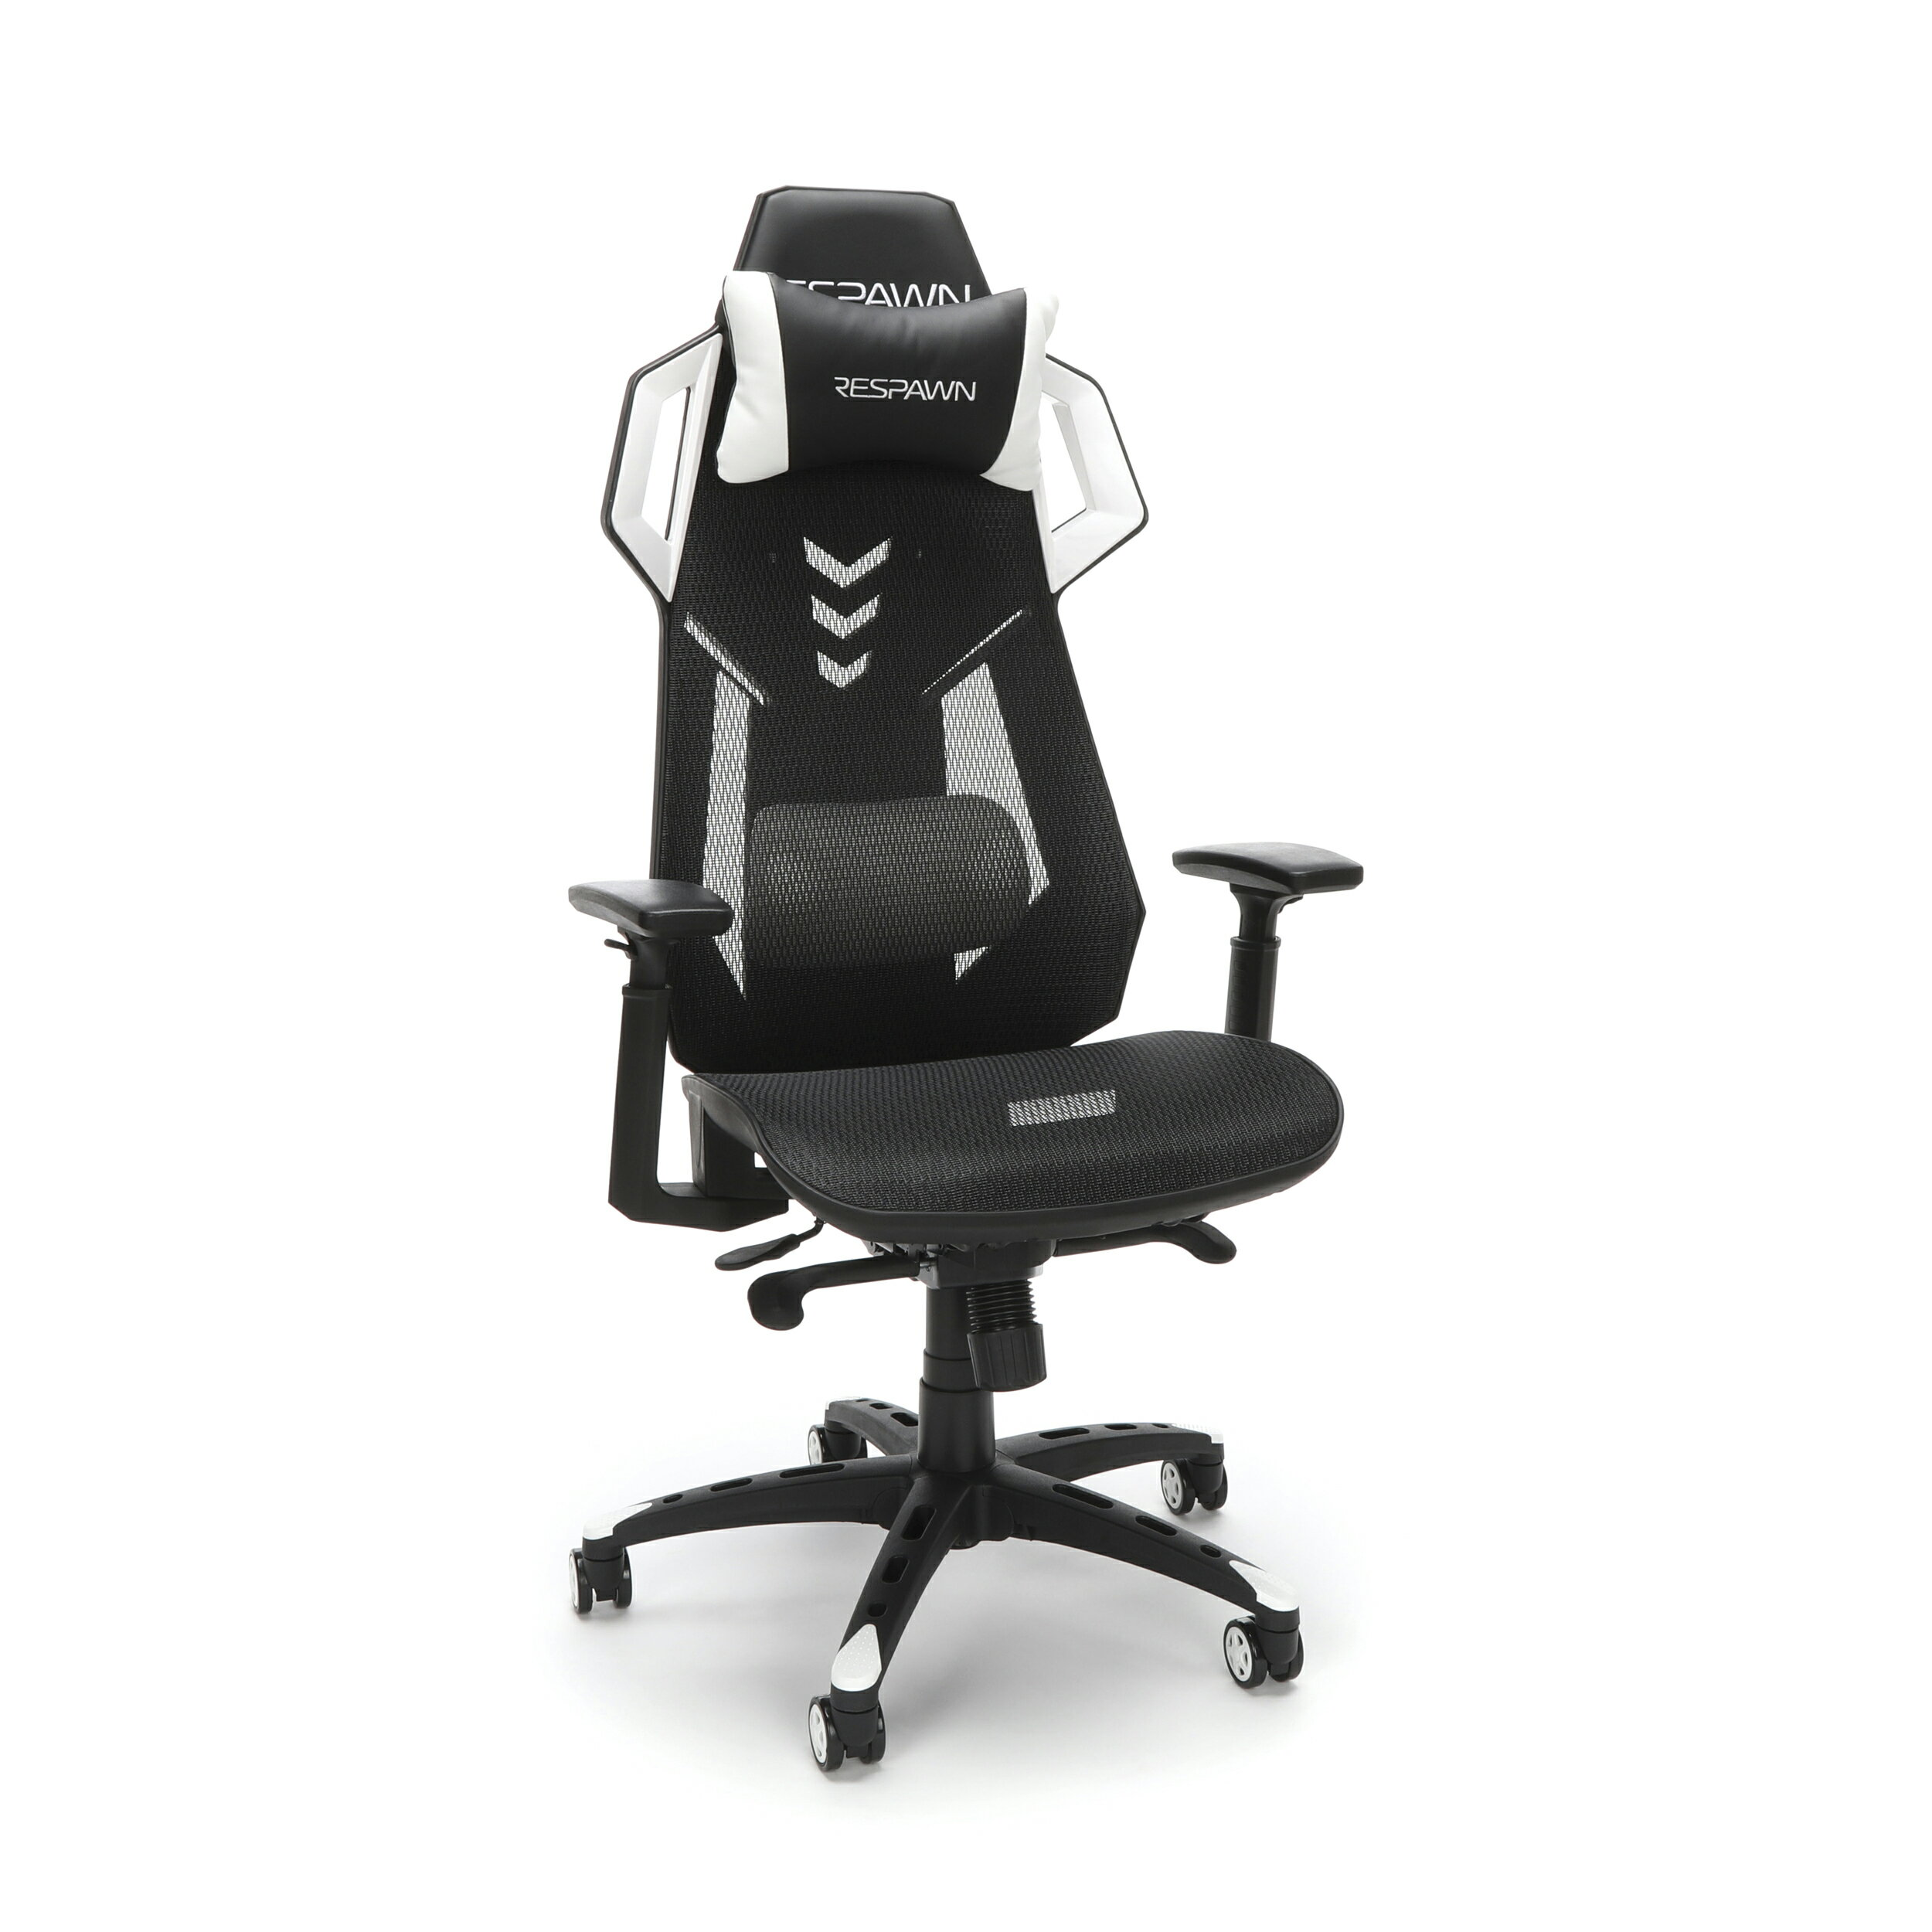 RESPAWN-300 Racing Style Gaming Chair - Ergonomic Performance All Mesh Chair, Office or Gaming Chair (RSP-300) 4